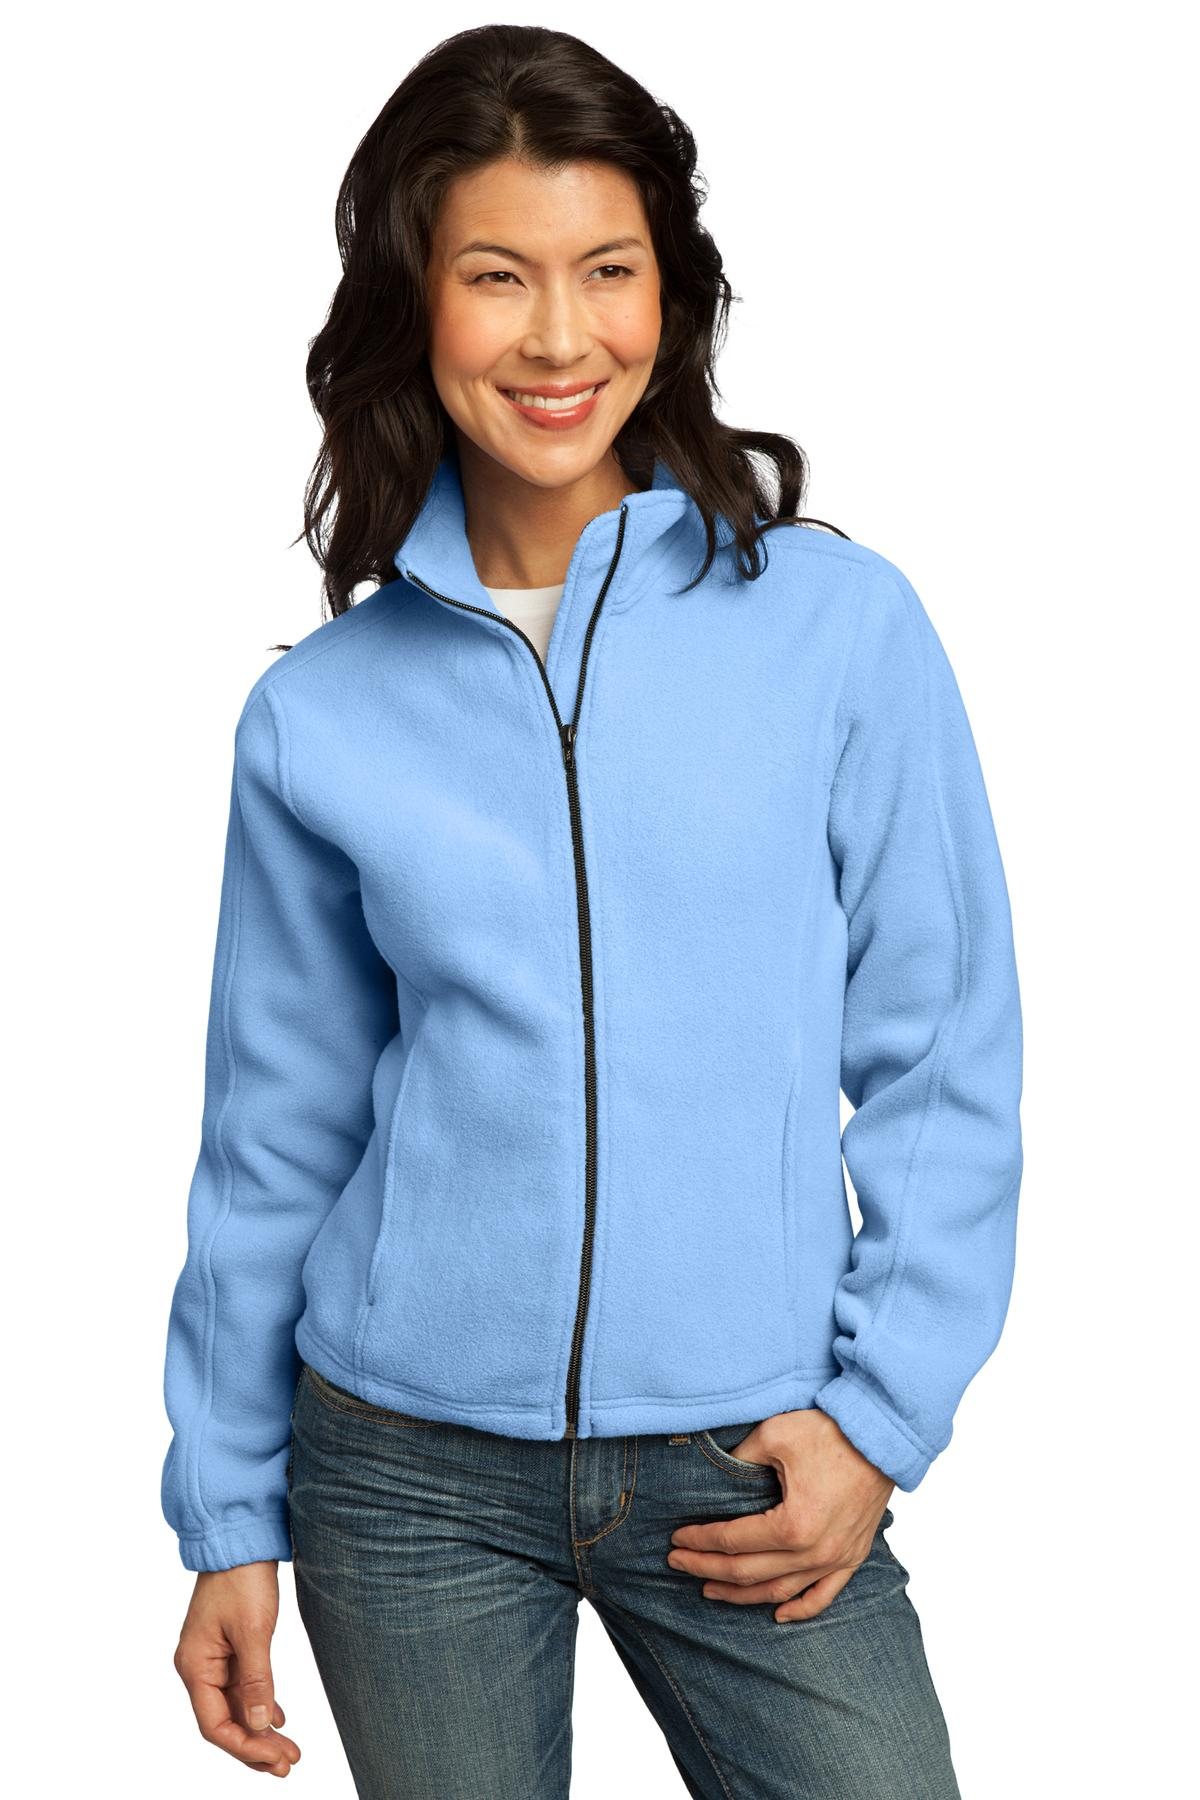 Outerwear-Polyester-Fleece-50